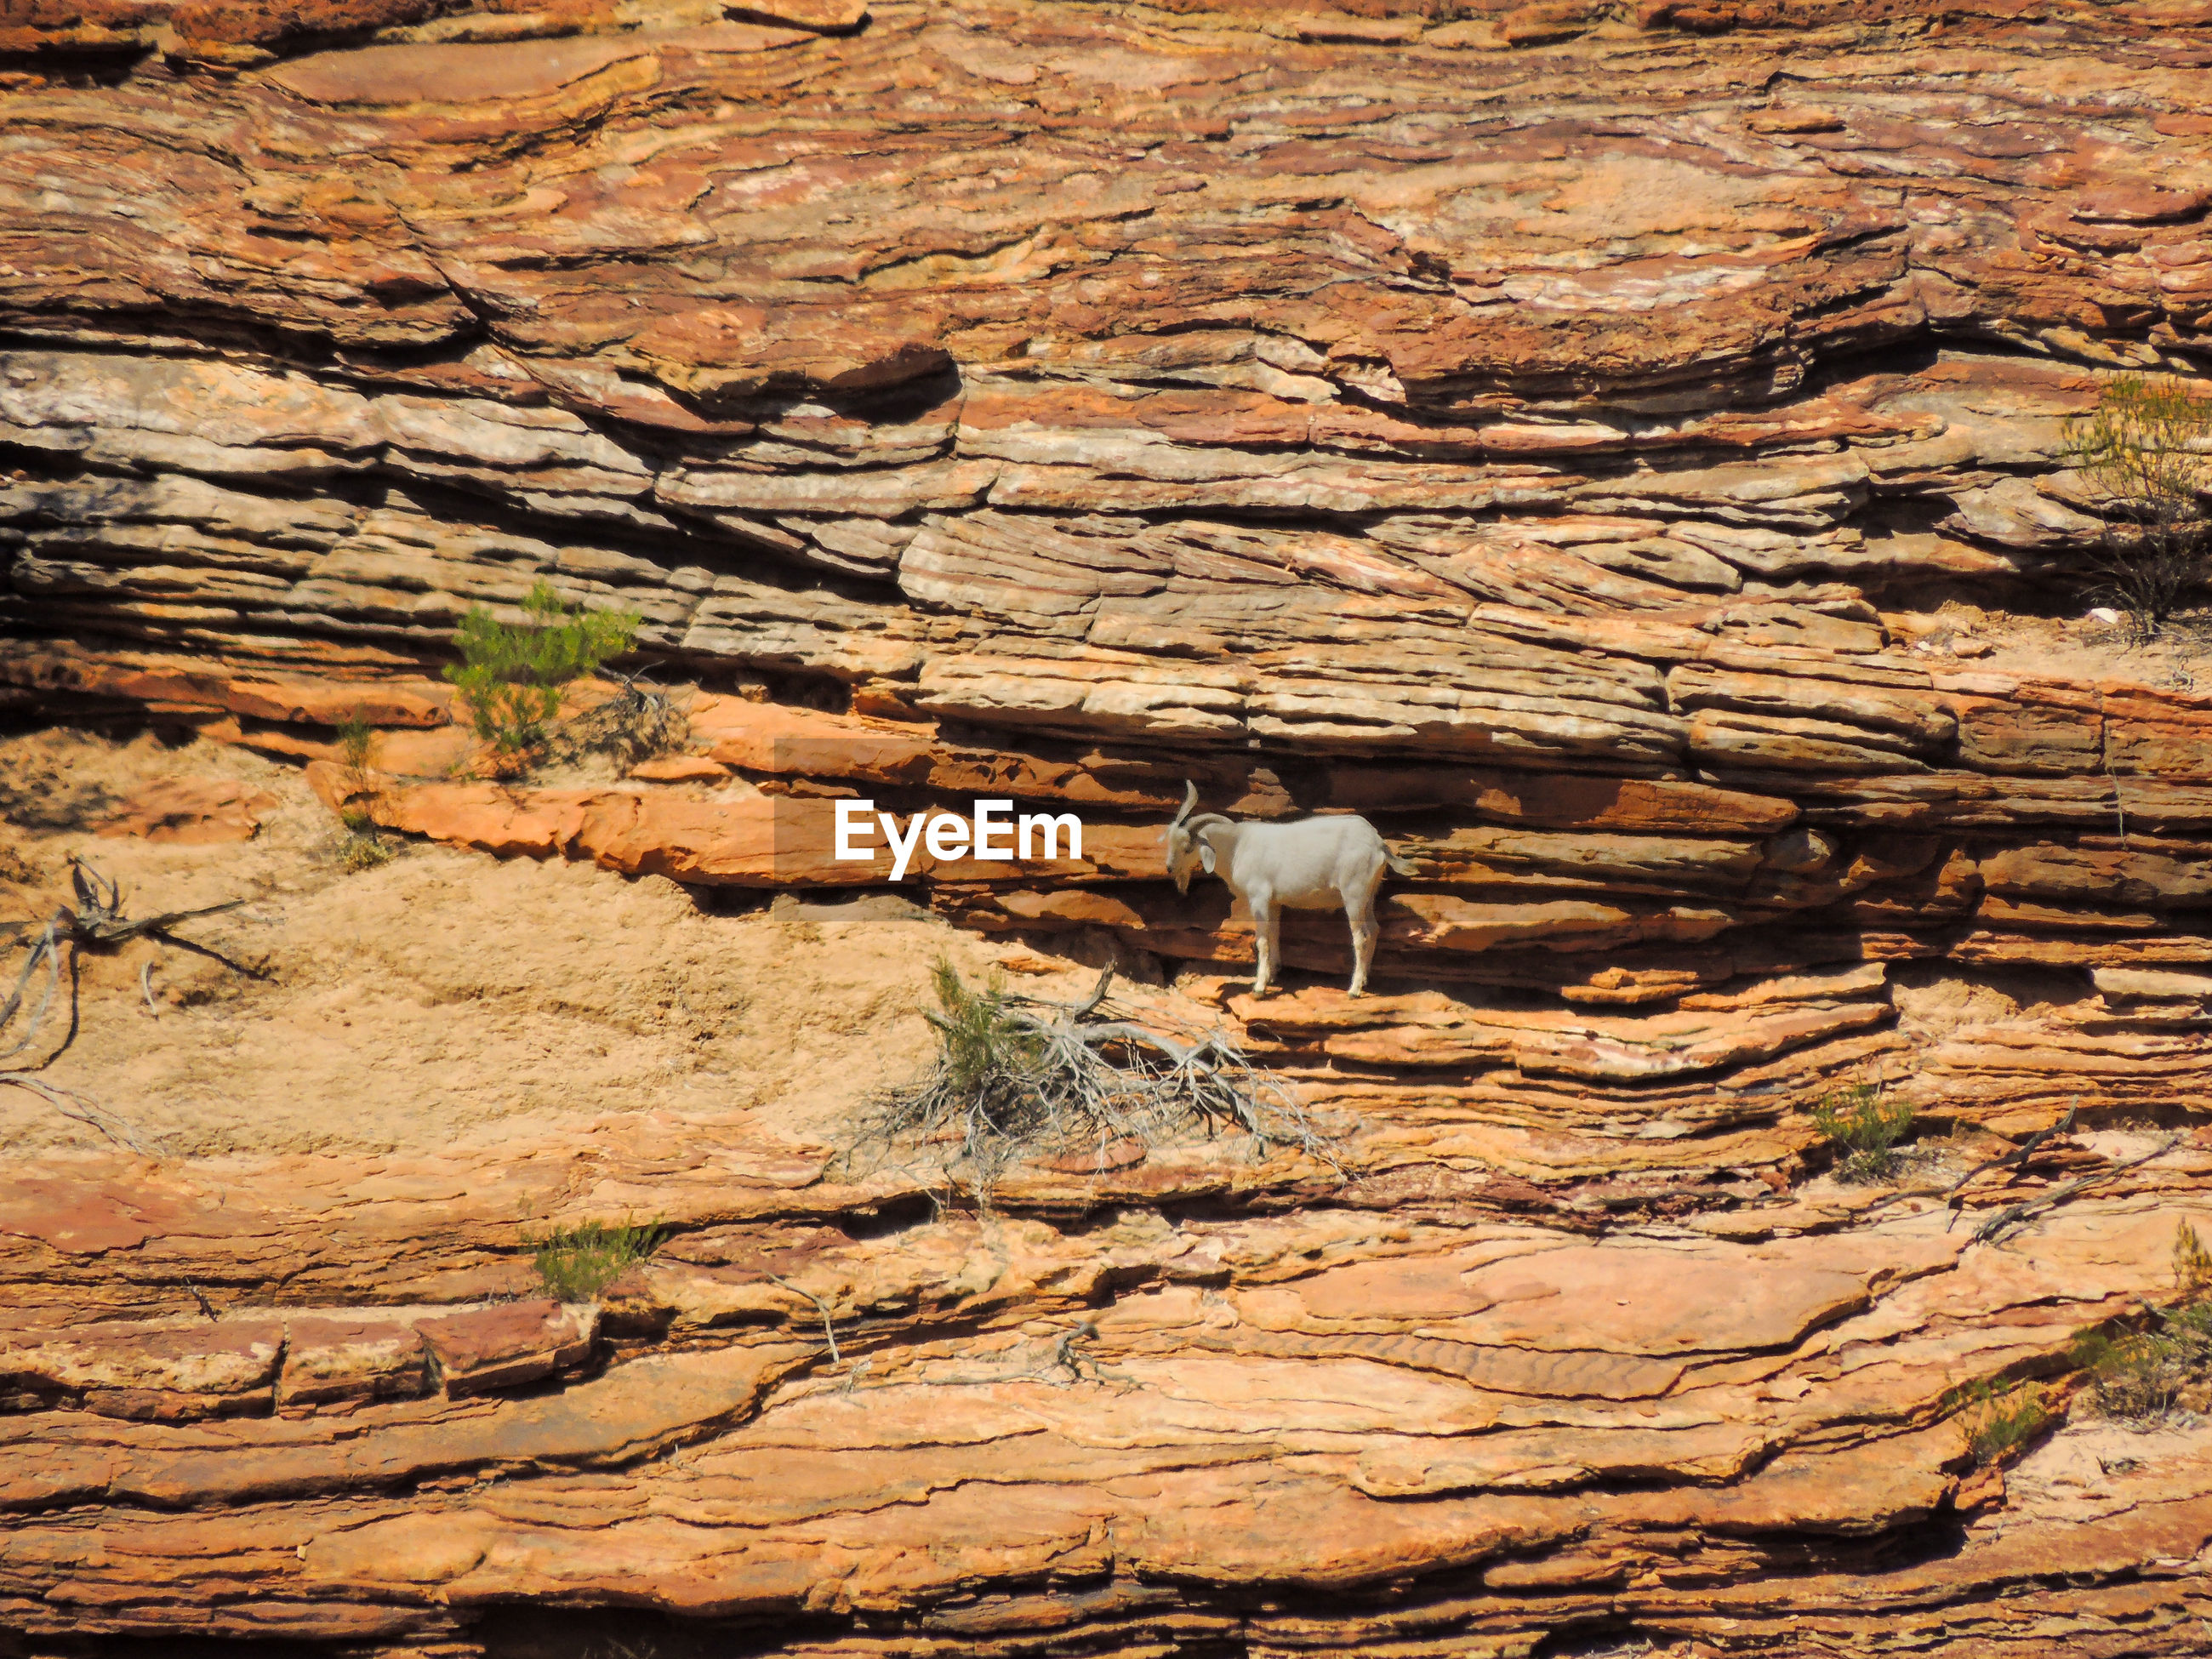 View of goat on rock